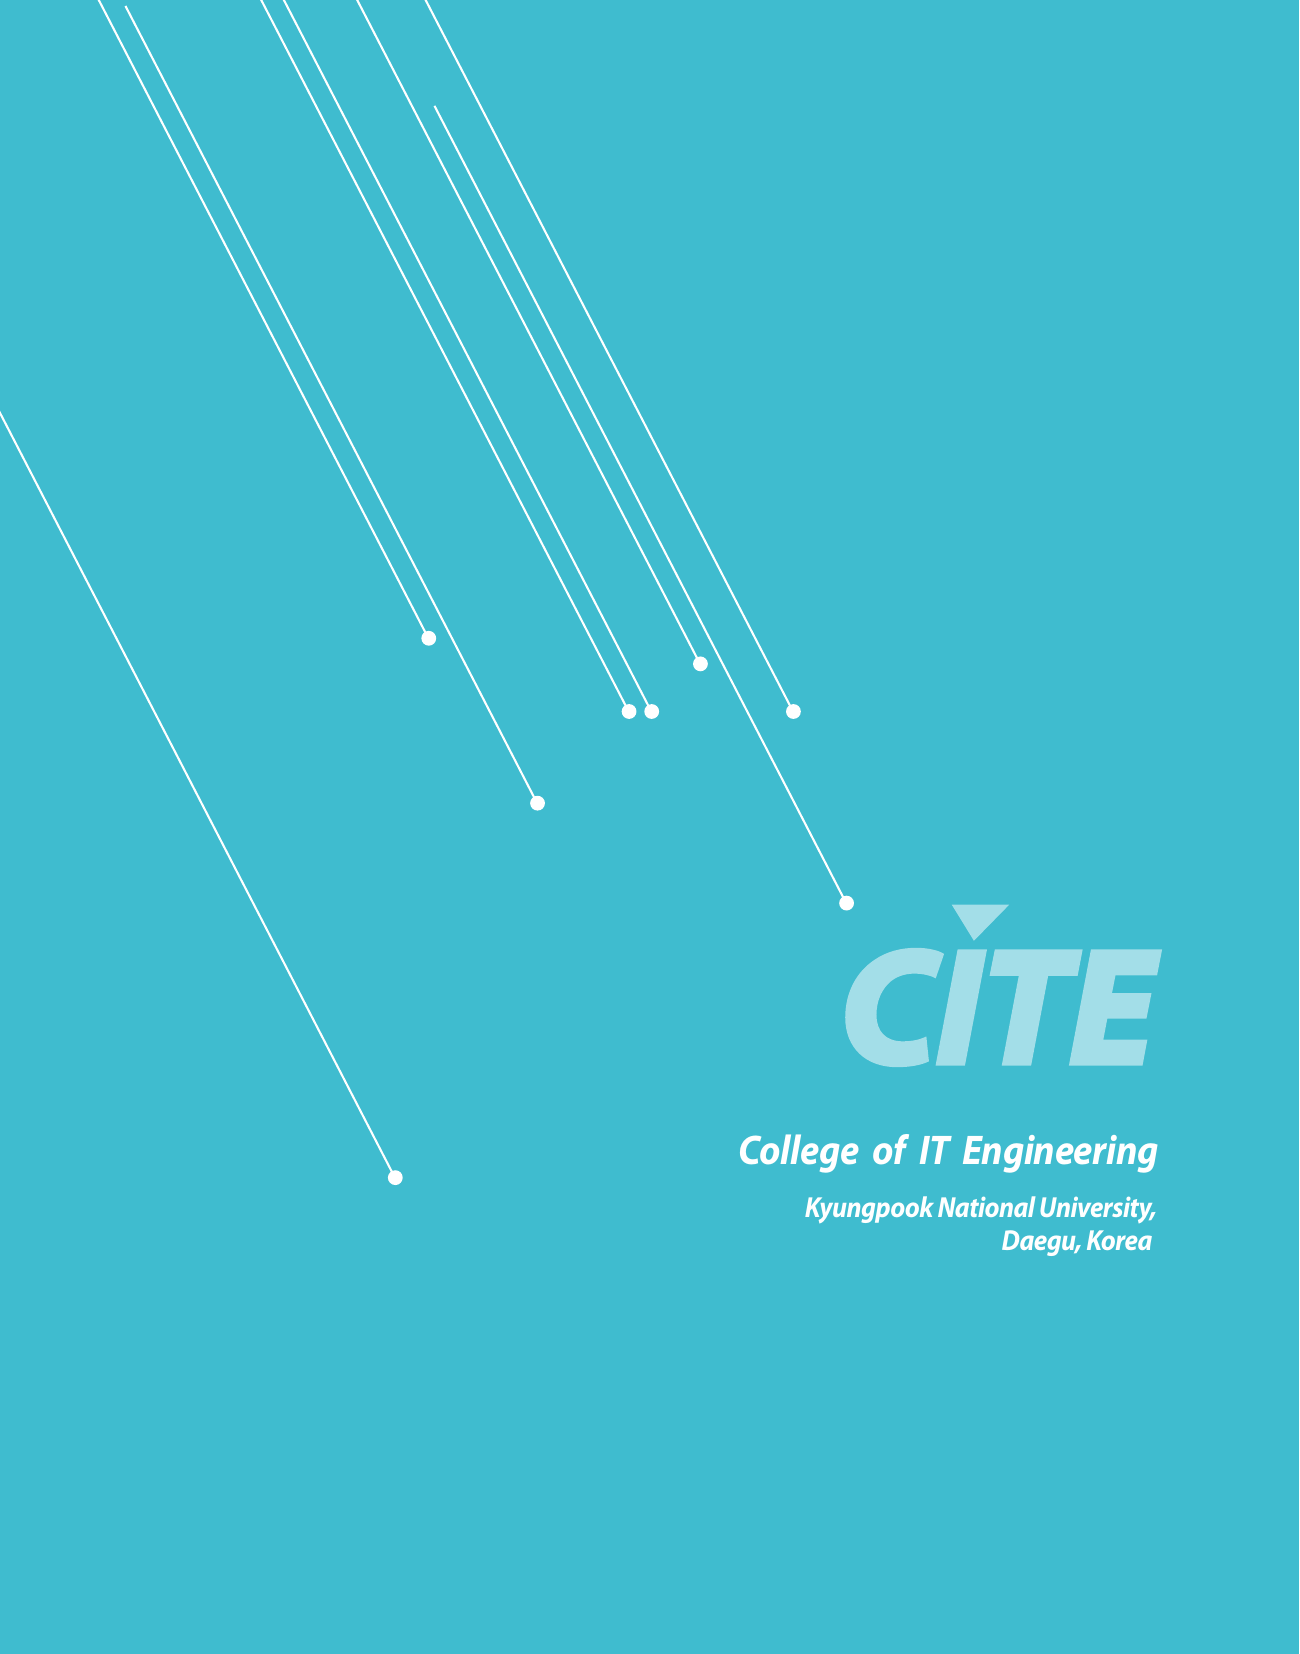 College Of It Engineering For 3g Repeater Multilayer Printed Circuit Board Fabrication Design